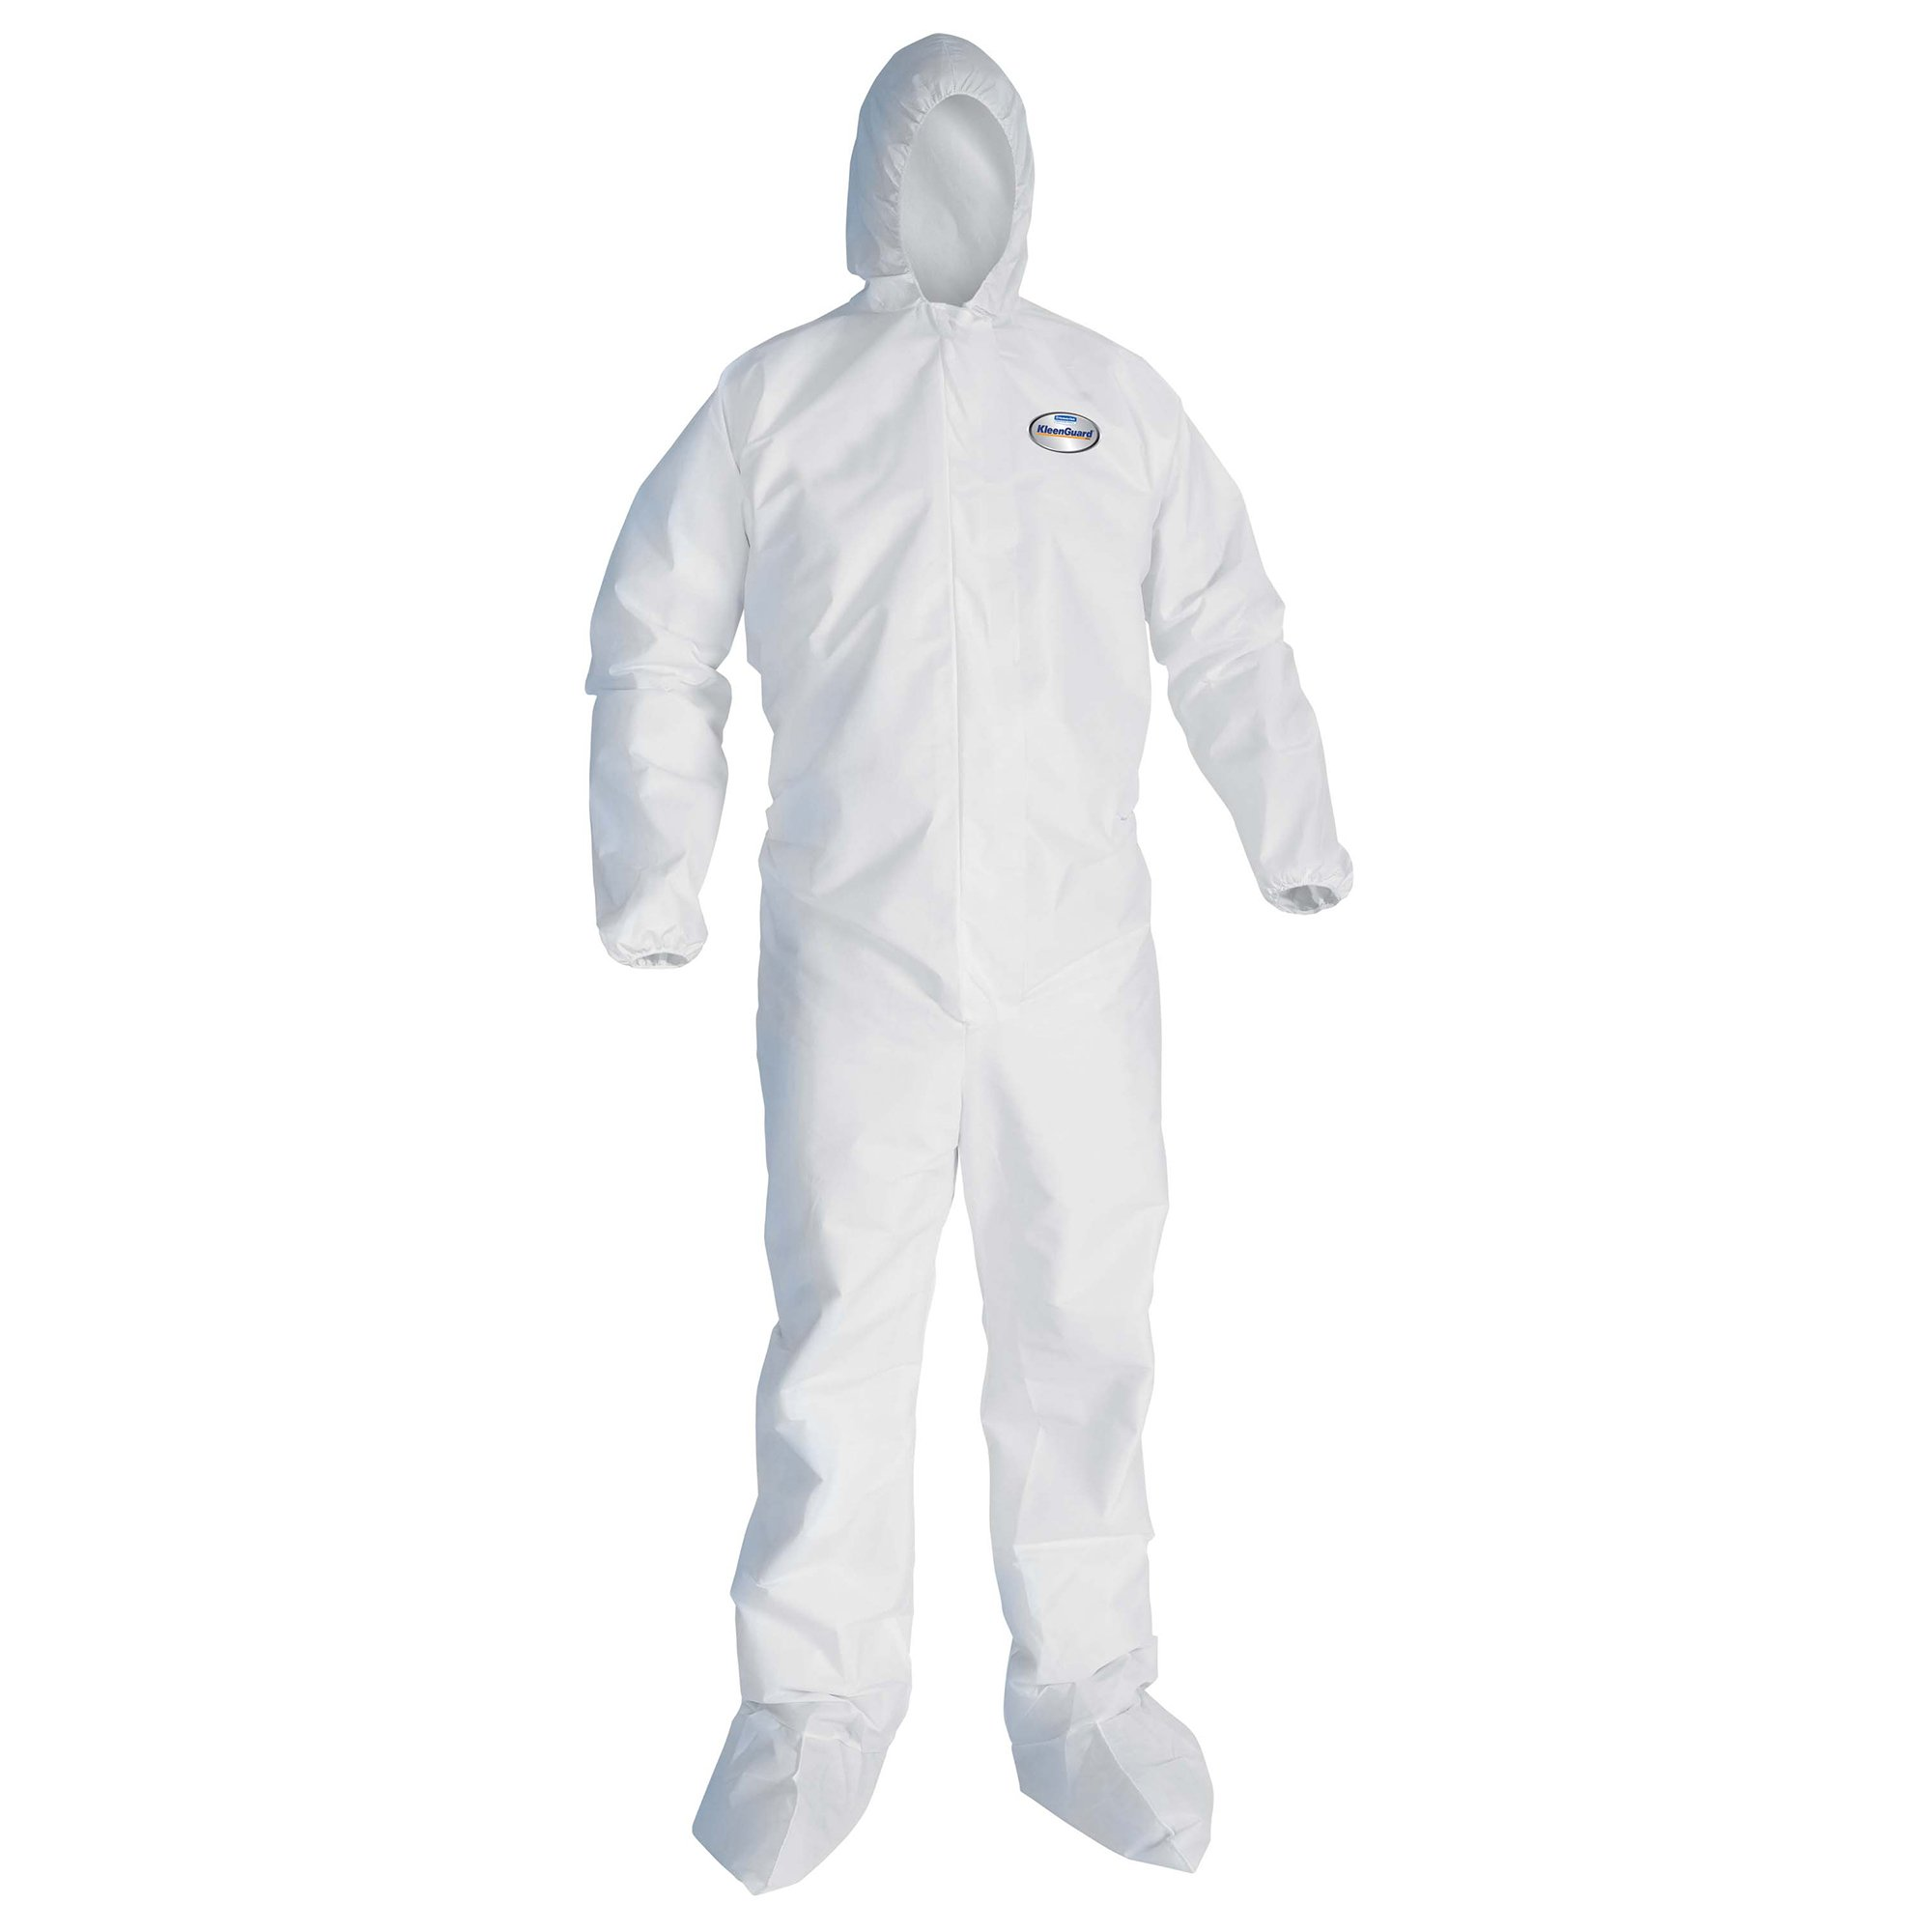 Kleenguard A10 Light Duty Coveralls (10631), Zip Front, Elastic Wrists, Hood, Boots, Breathable Material, White, 2XL, 25 / Case